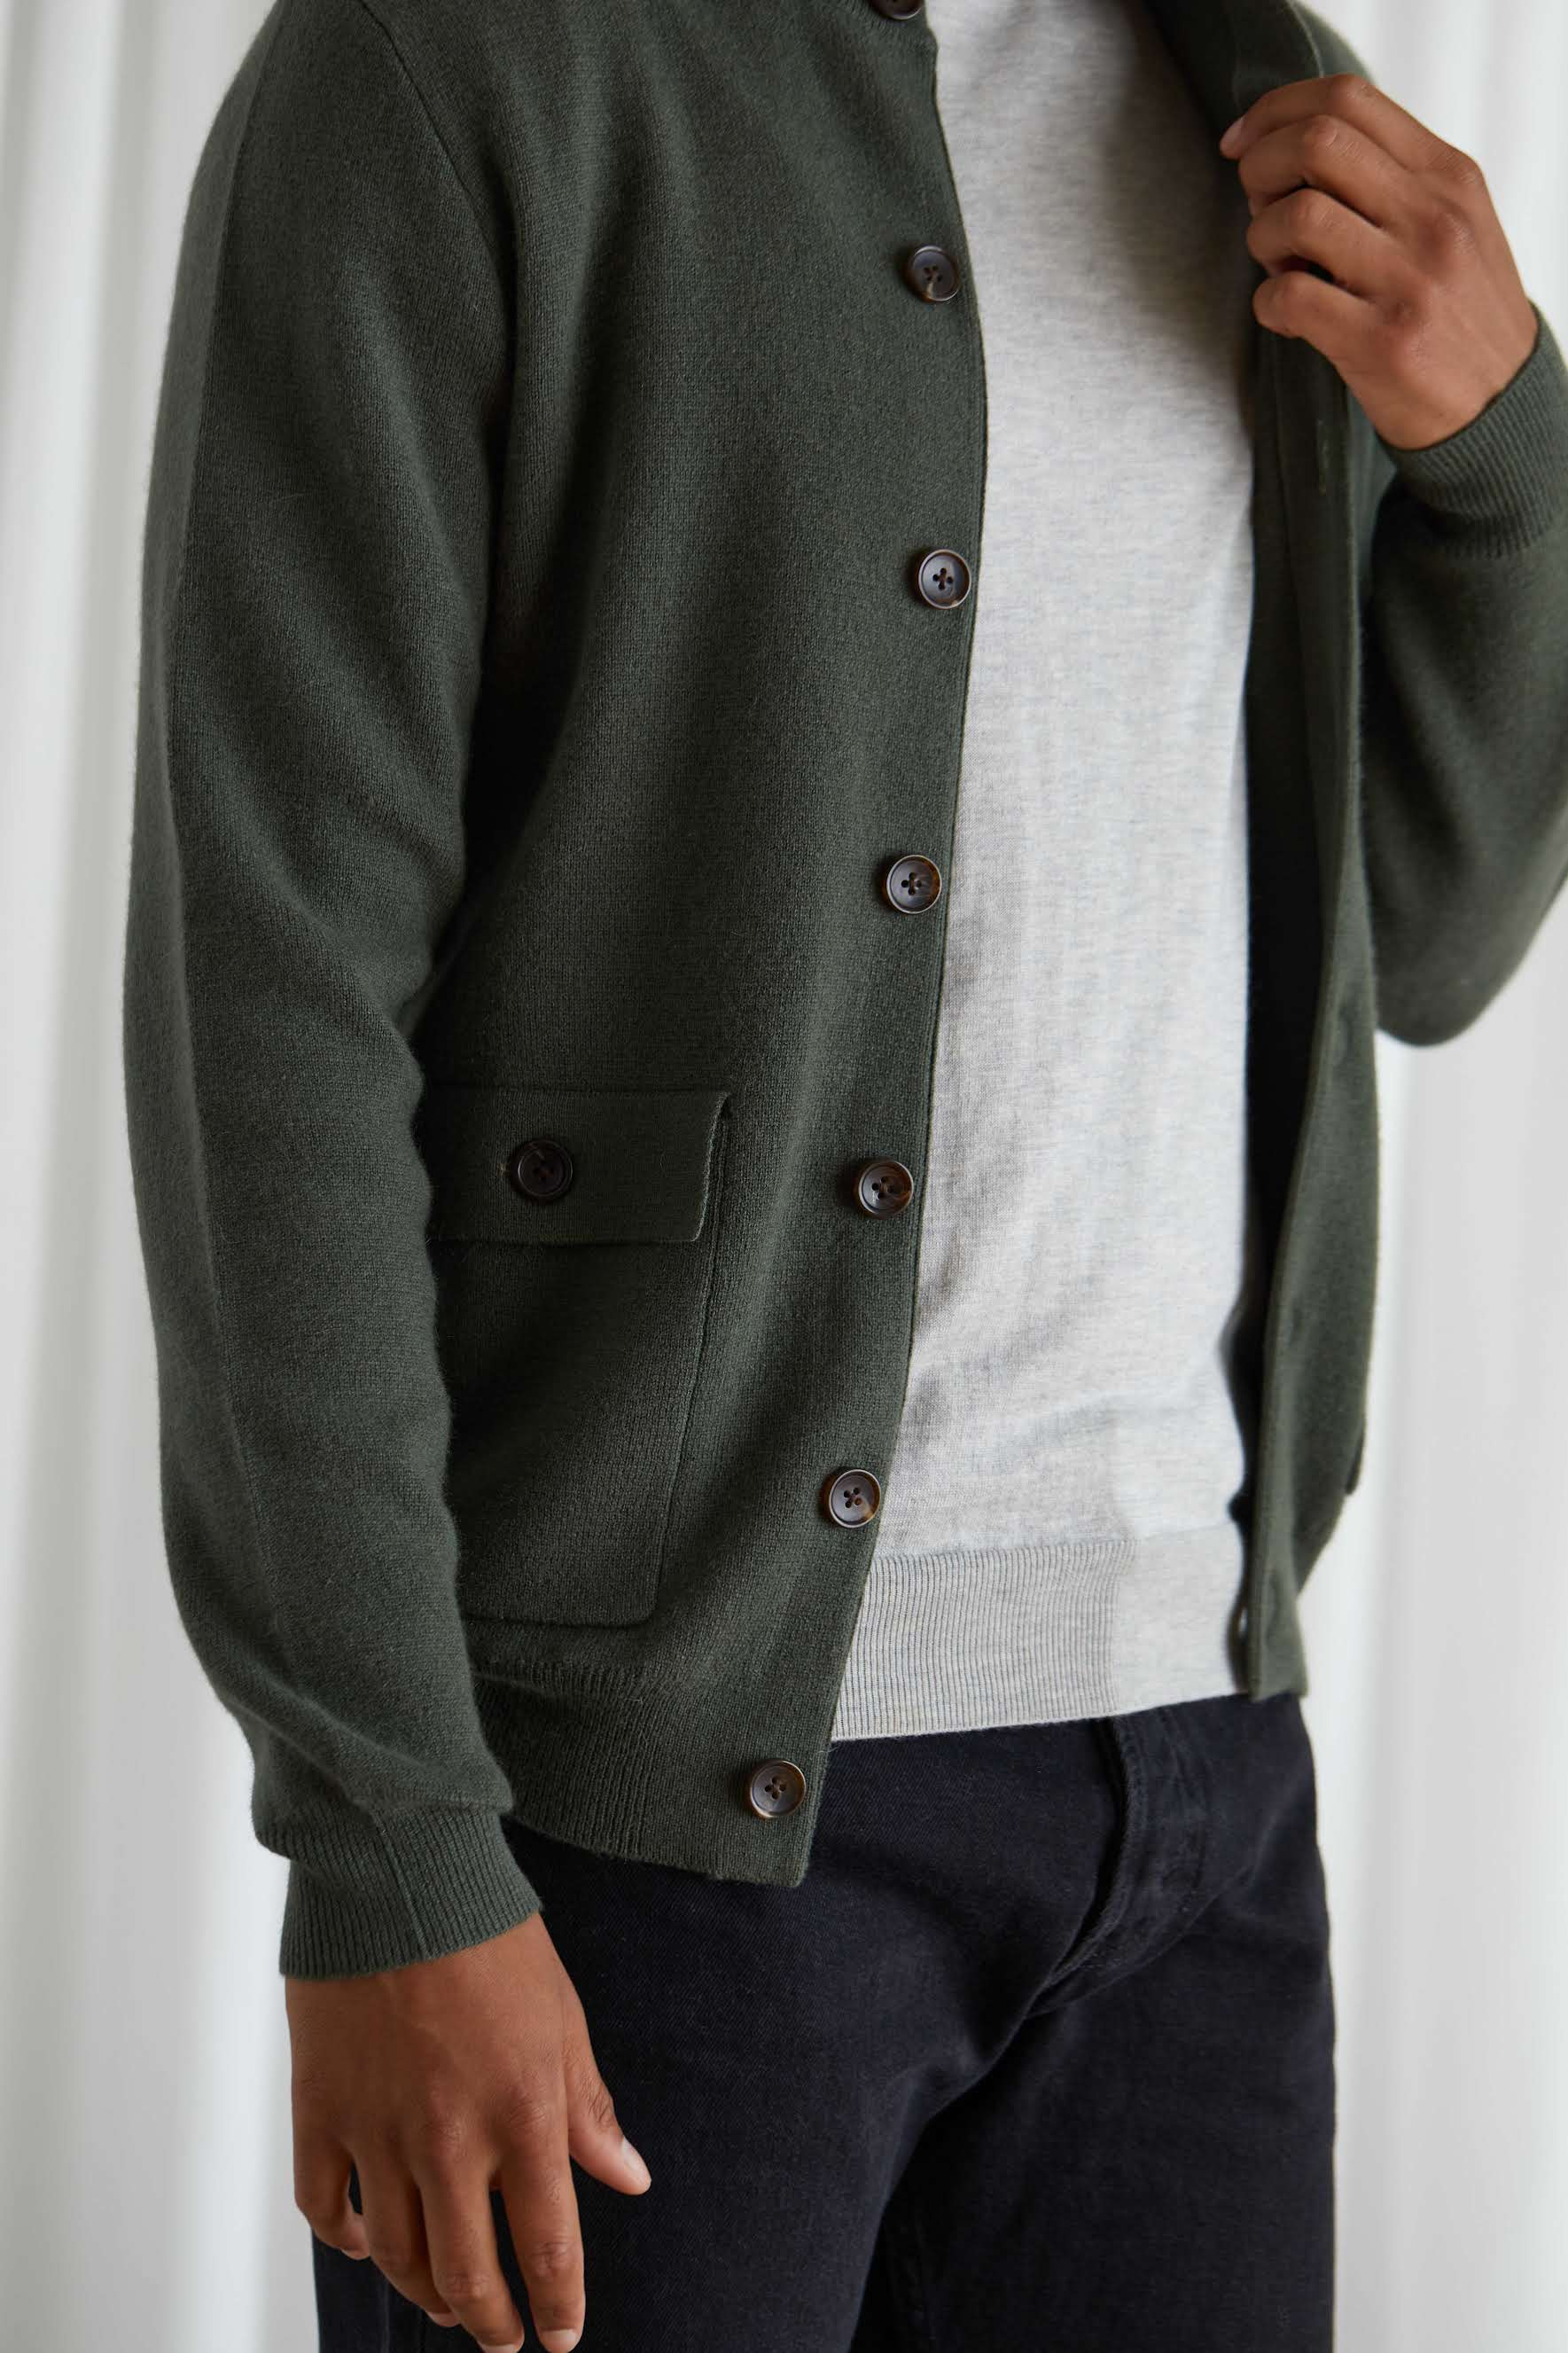 Man Buttoned Jacket